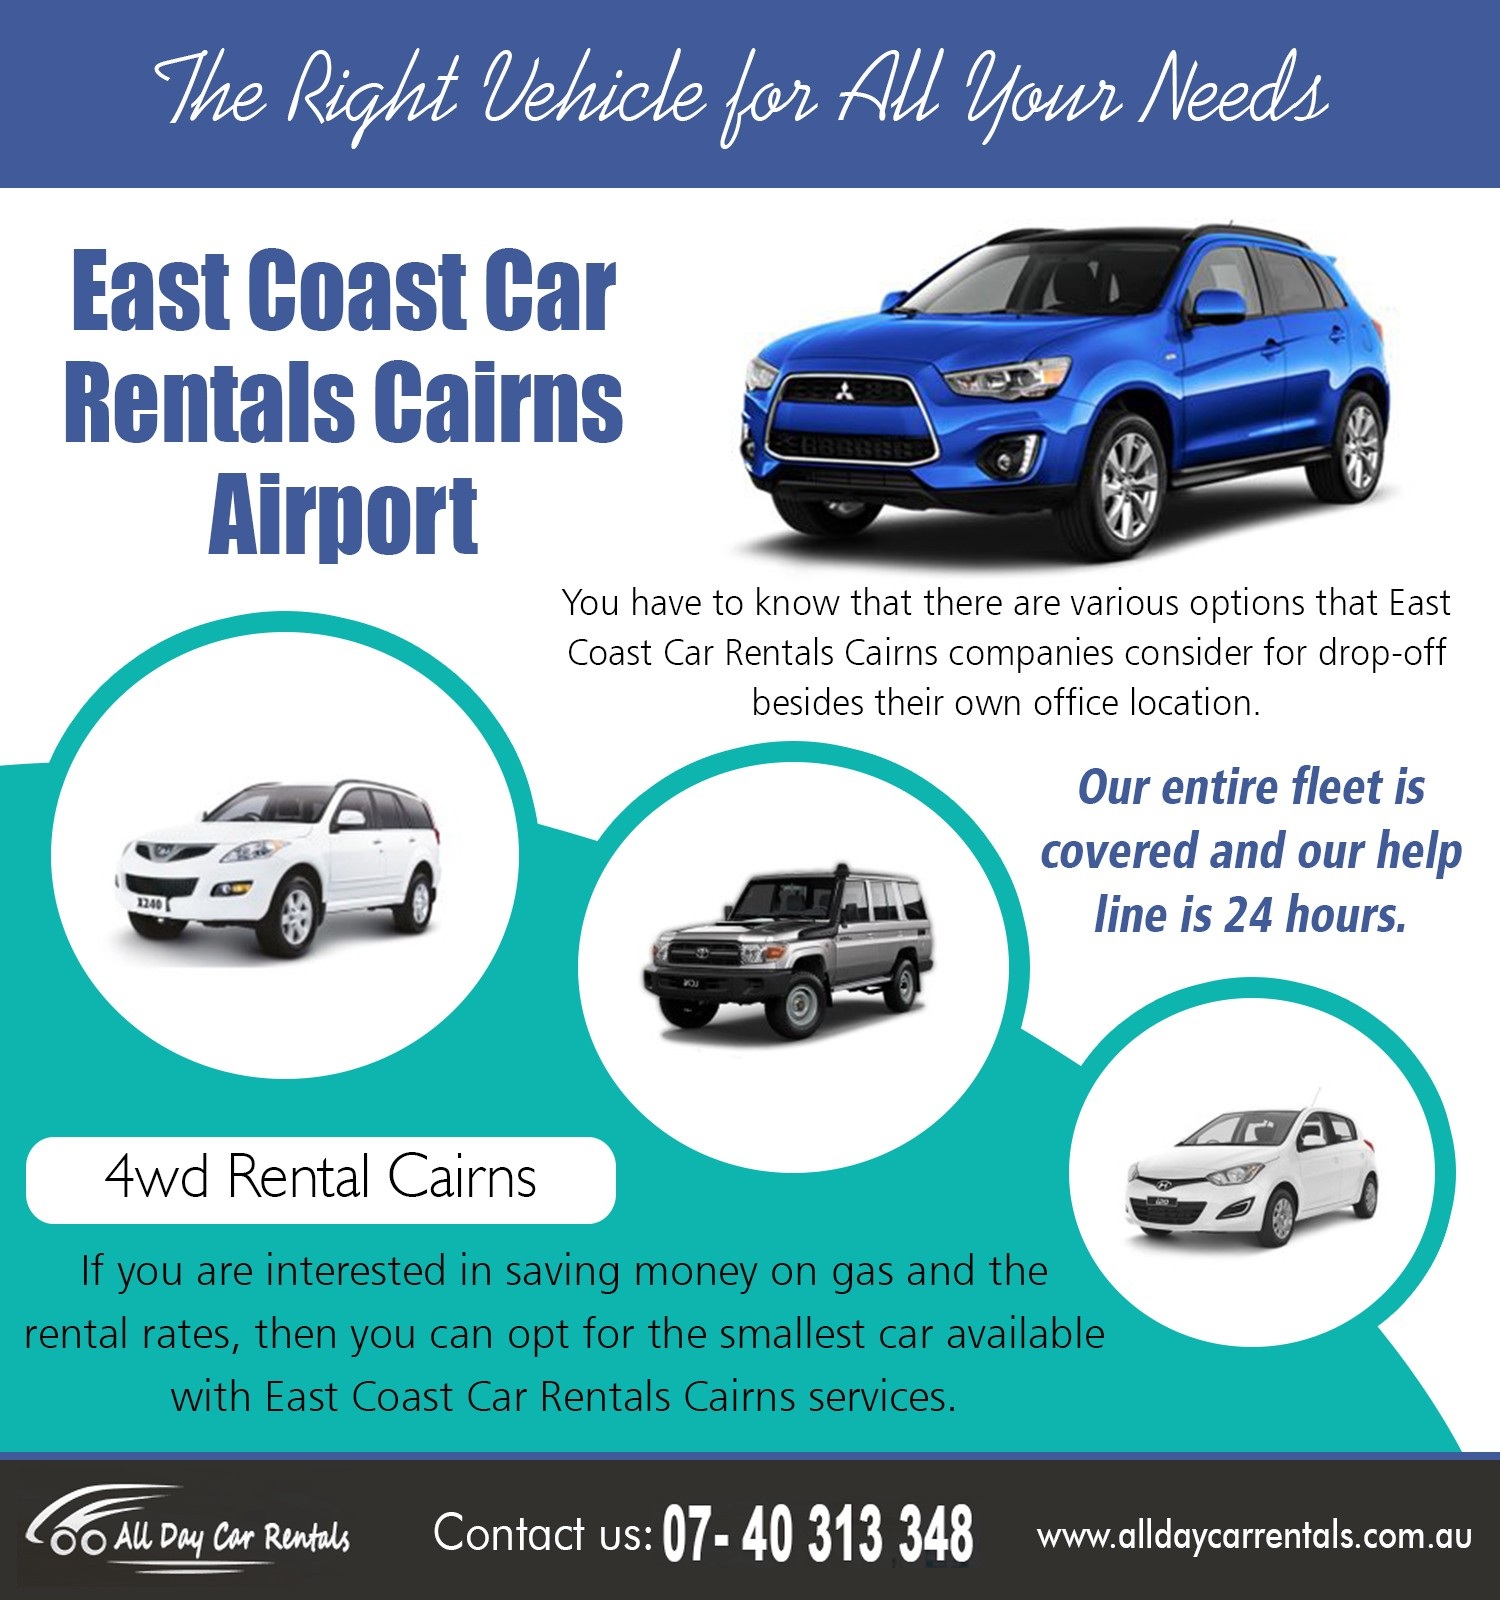 Whether You Are Looking For Budget Car Al National Or An Enterprise The Company Gives Best To Help Your Search